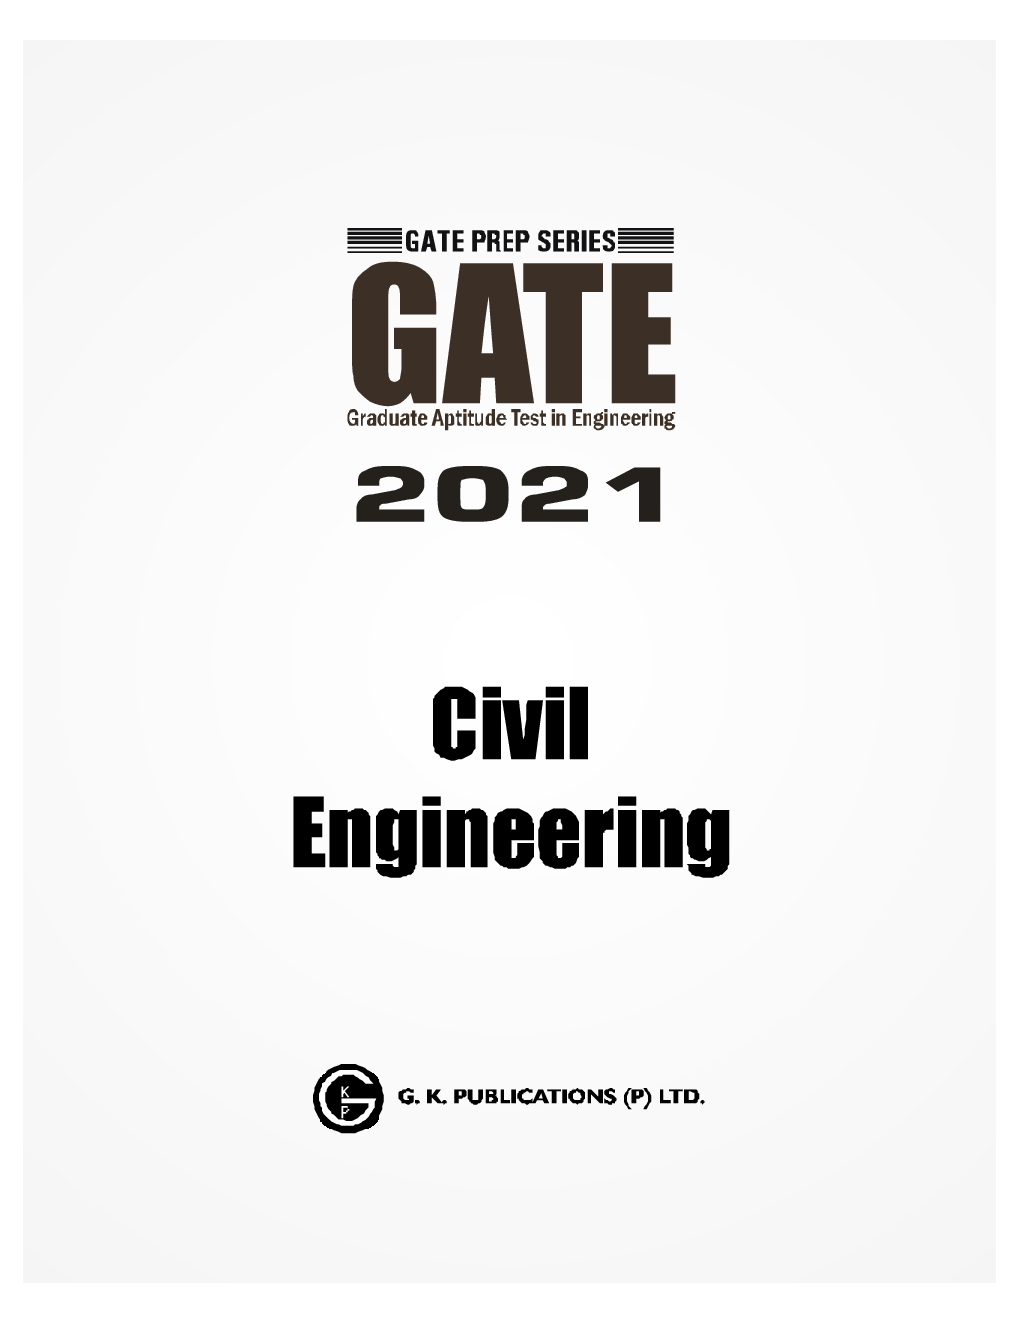 GATE 2021 Civil Engineering - Guide - Page 2